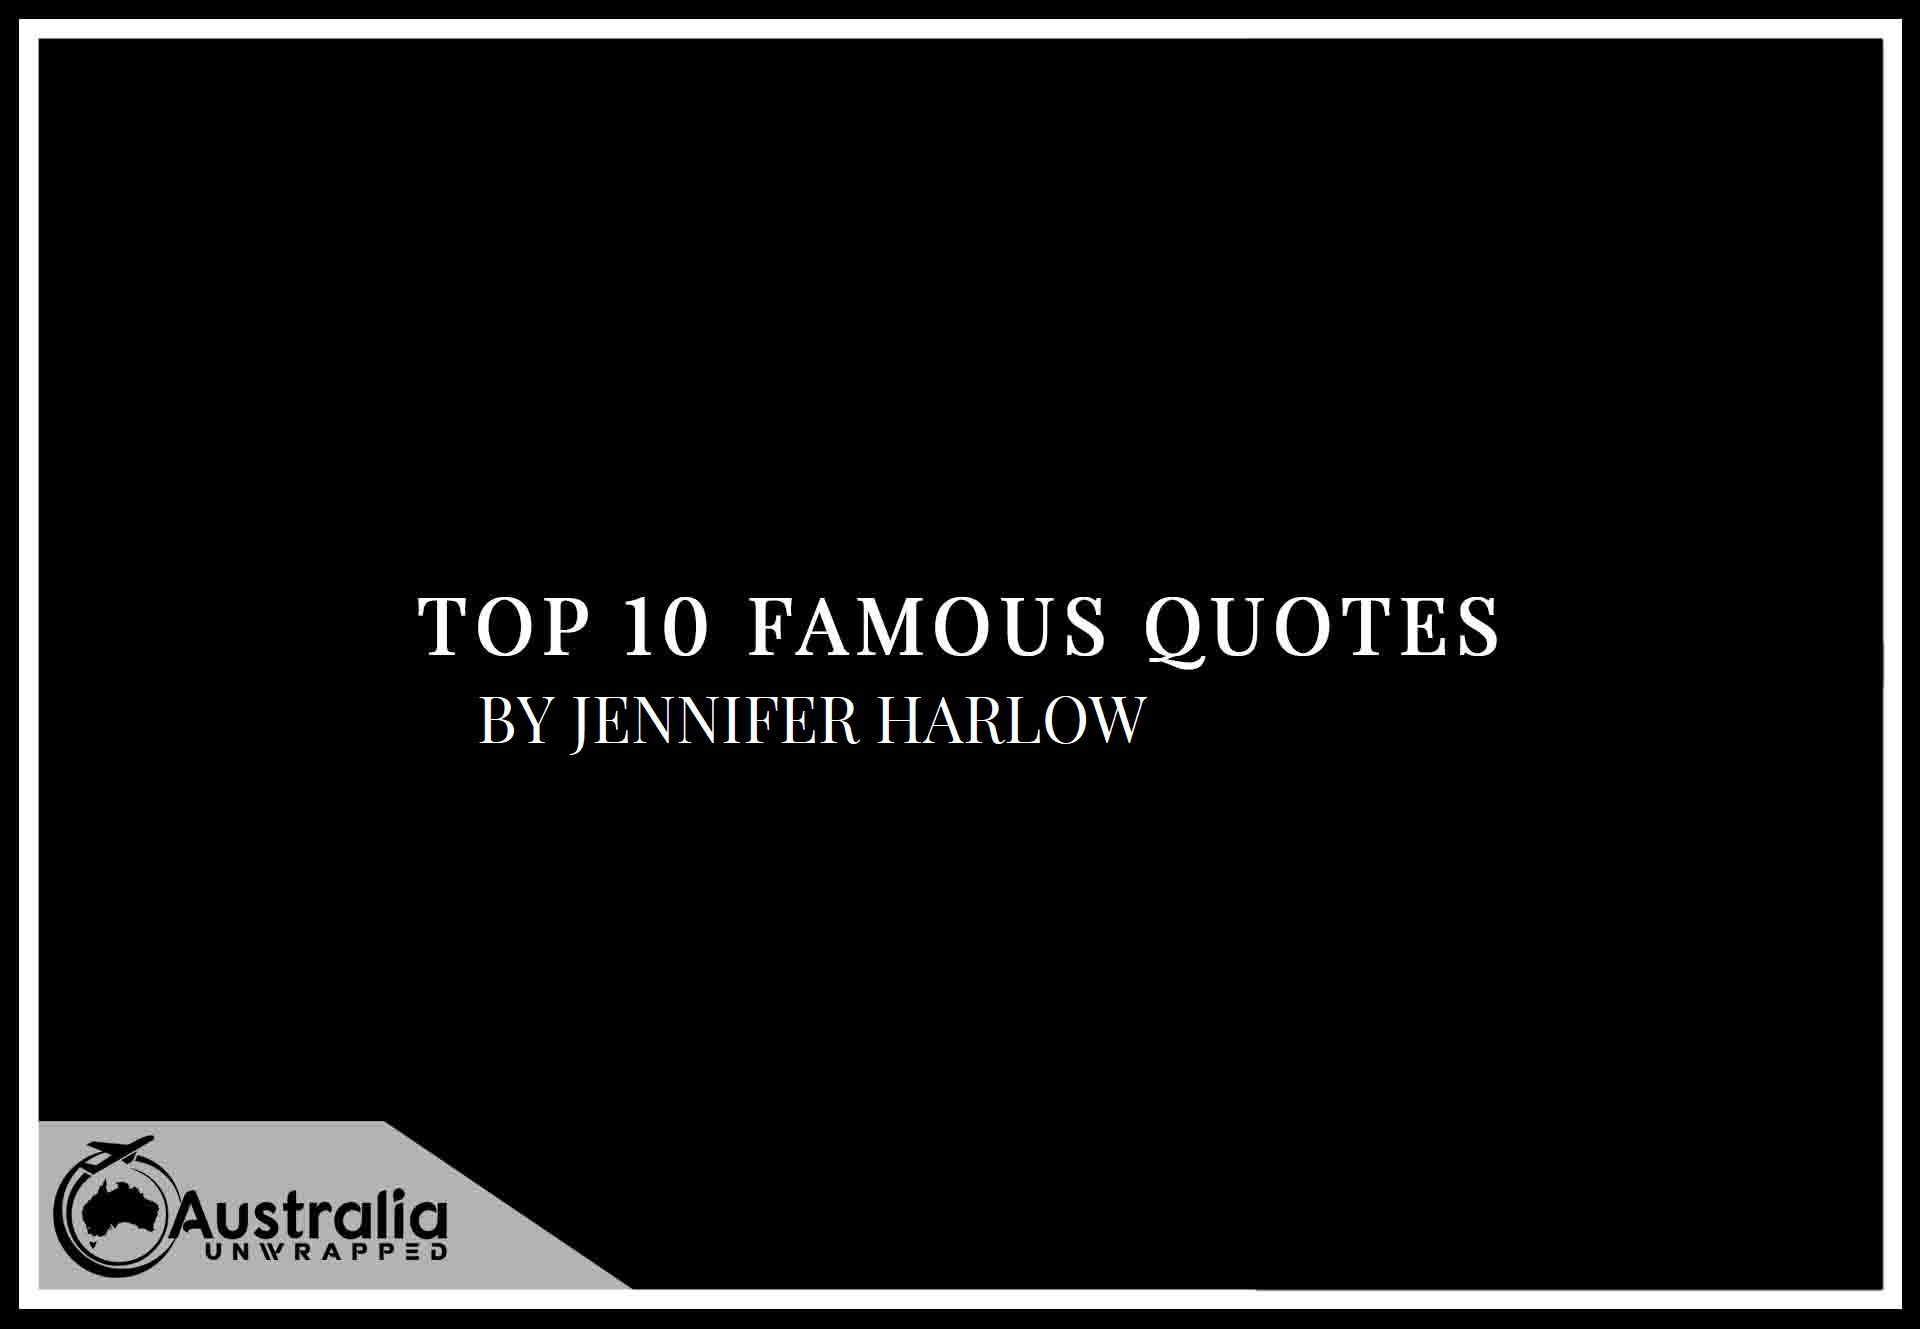 Top 10 Famous Quotes by Author Jennifer Harlow